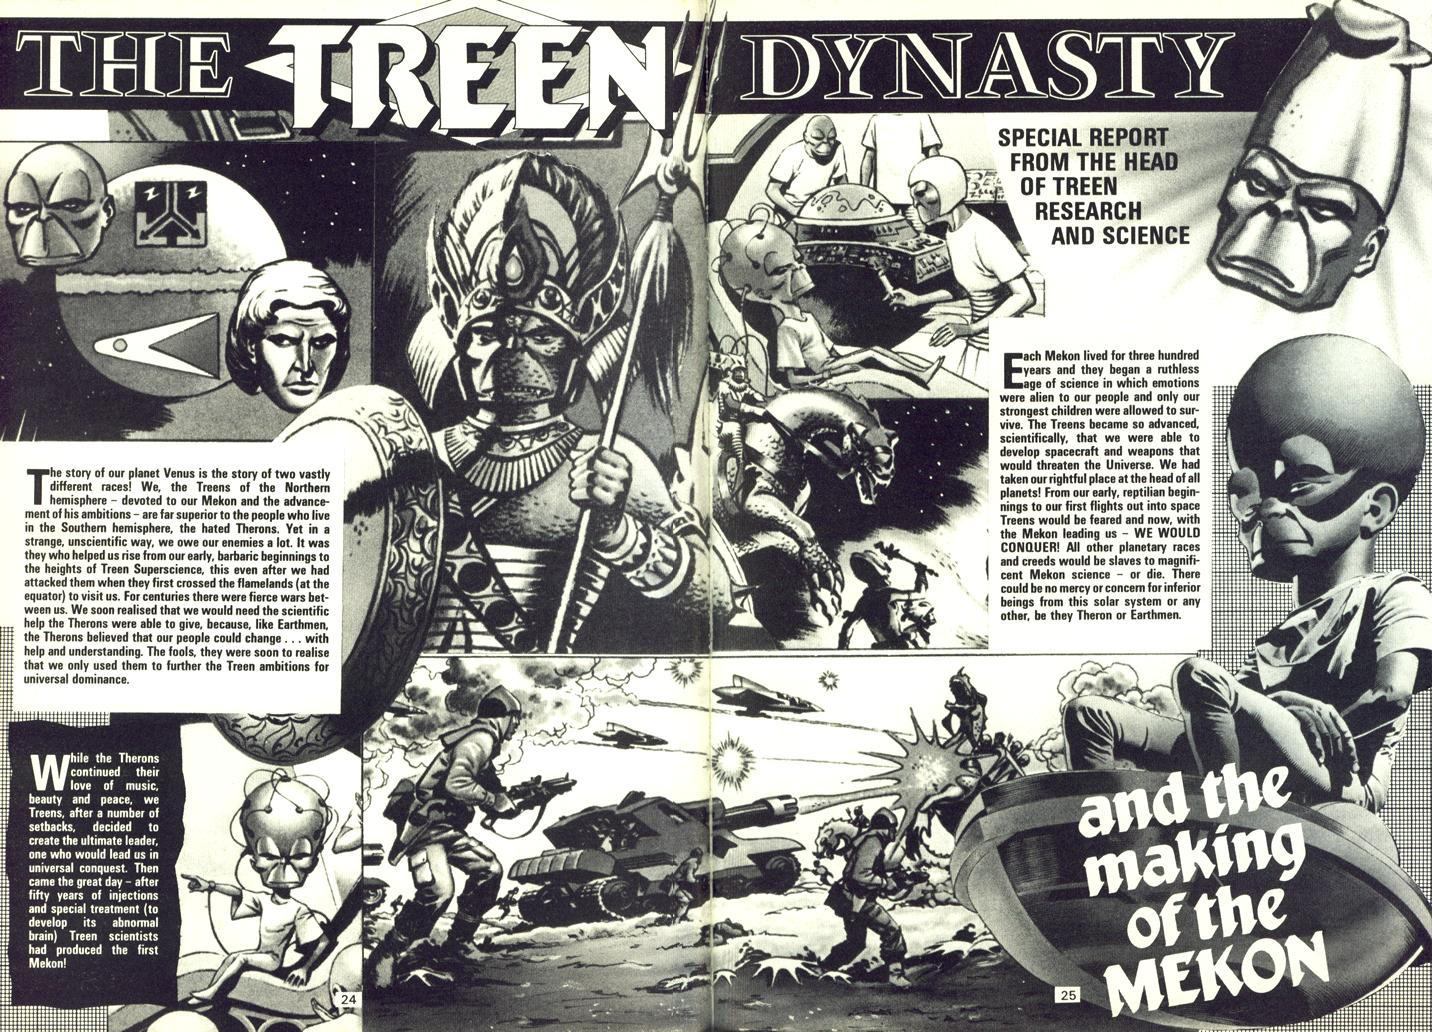 The Treen Dynasty - Pages 1 and 2 of 4